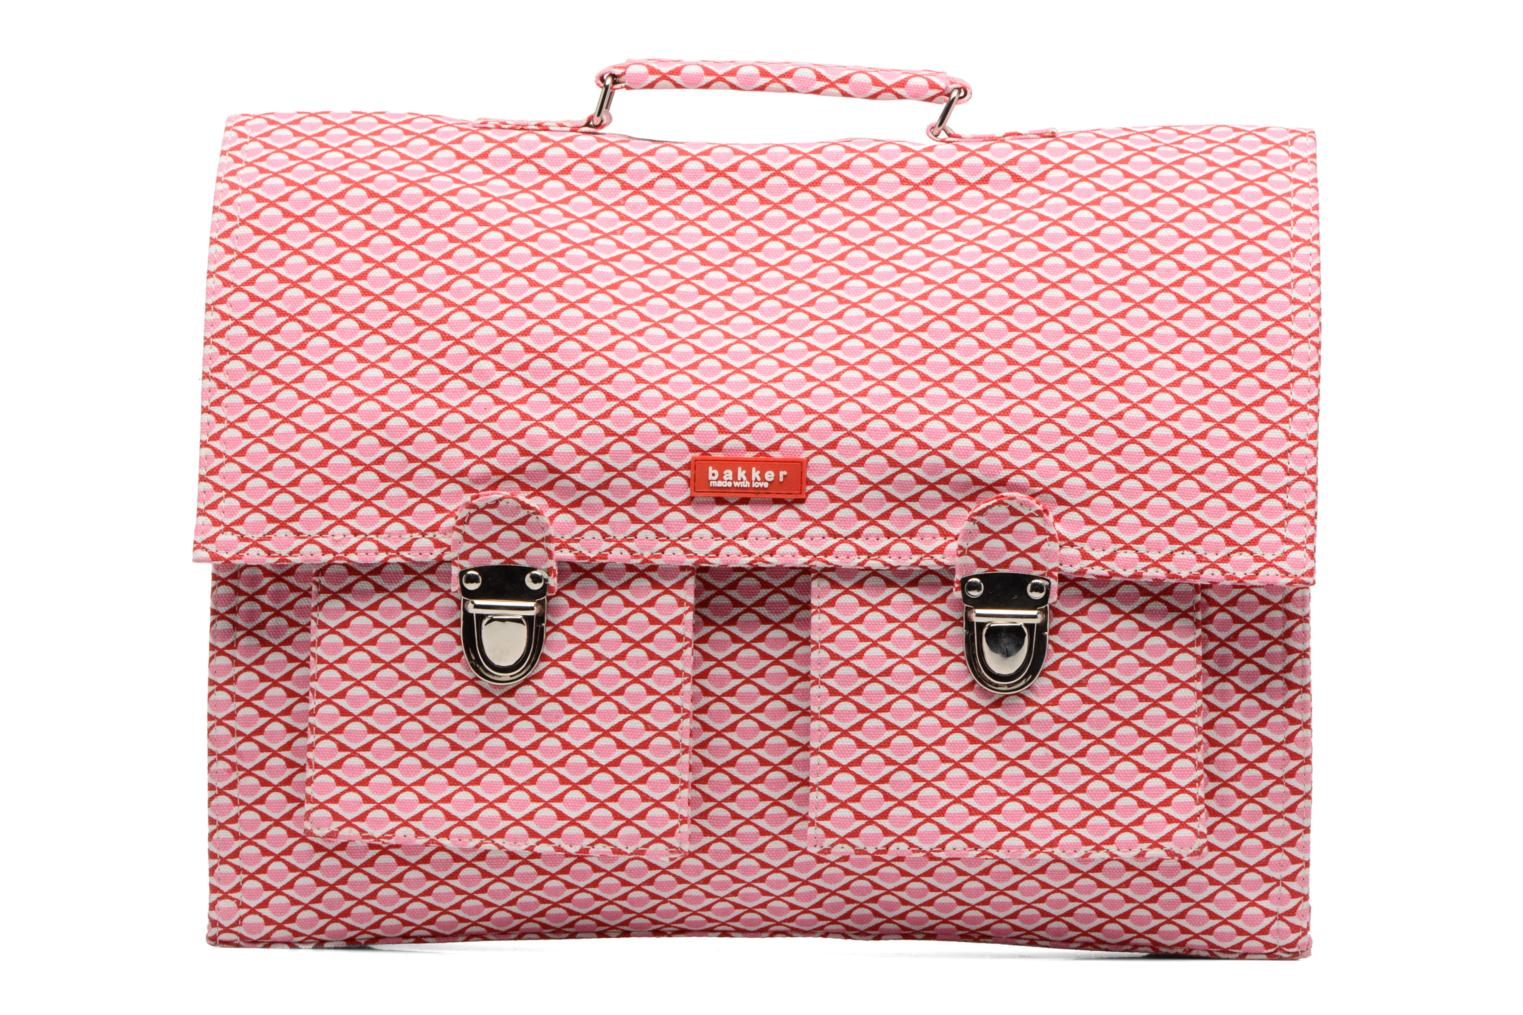 Scolaire Bakker Made With Love Chine 37cm Rose vue détail/paire